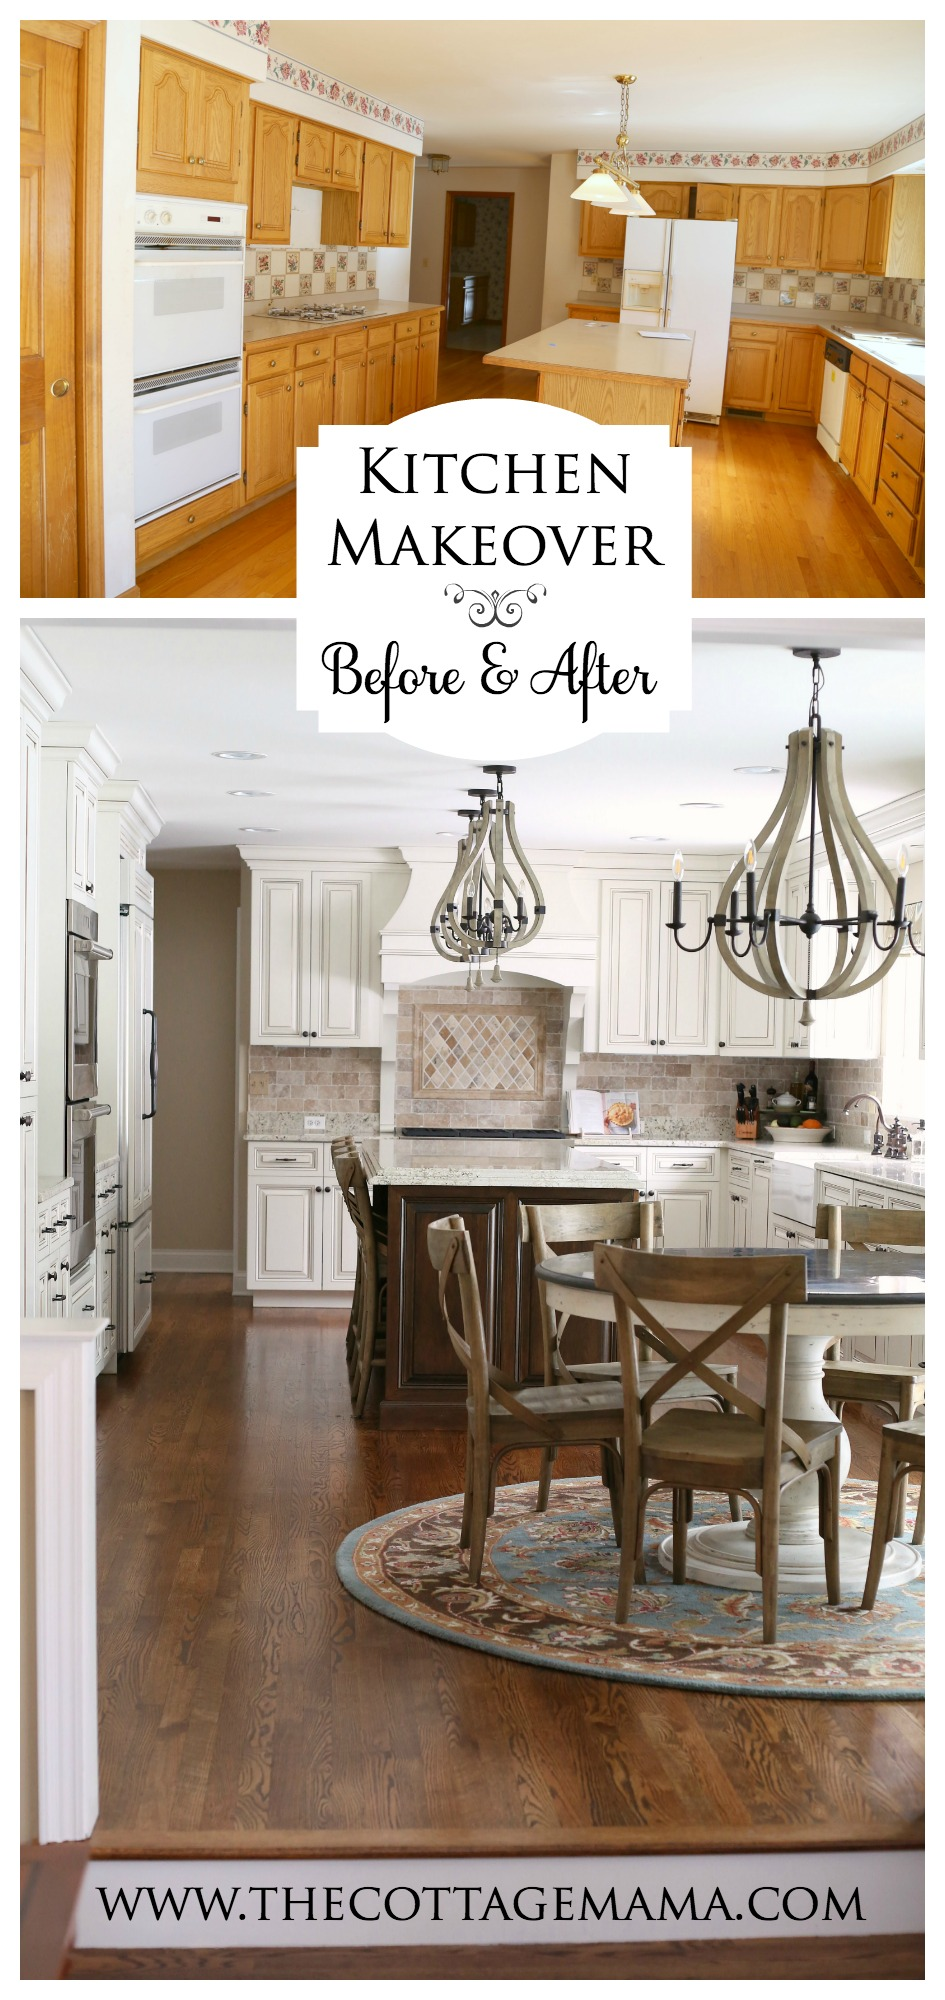 Check out this incredible before and after kitchen makeover from The Cottage Mama. Amazing!